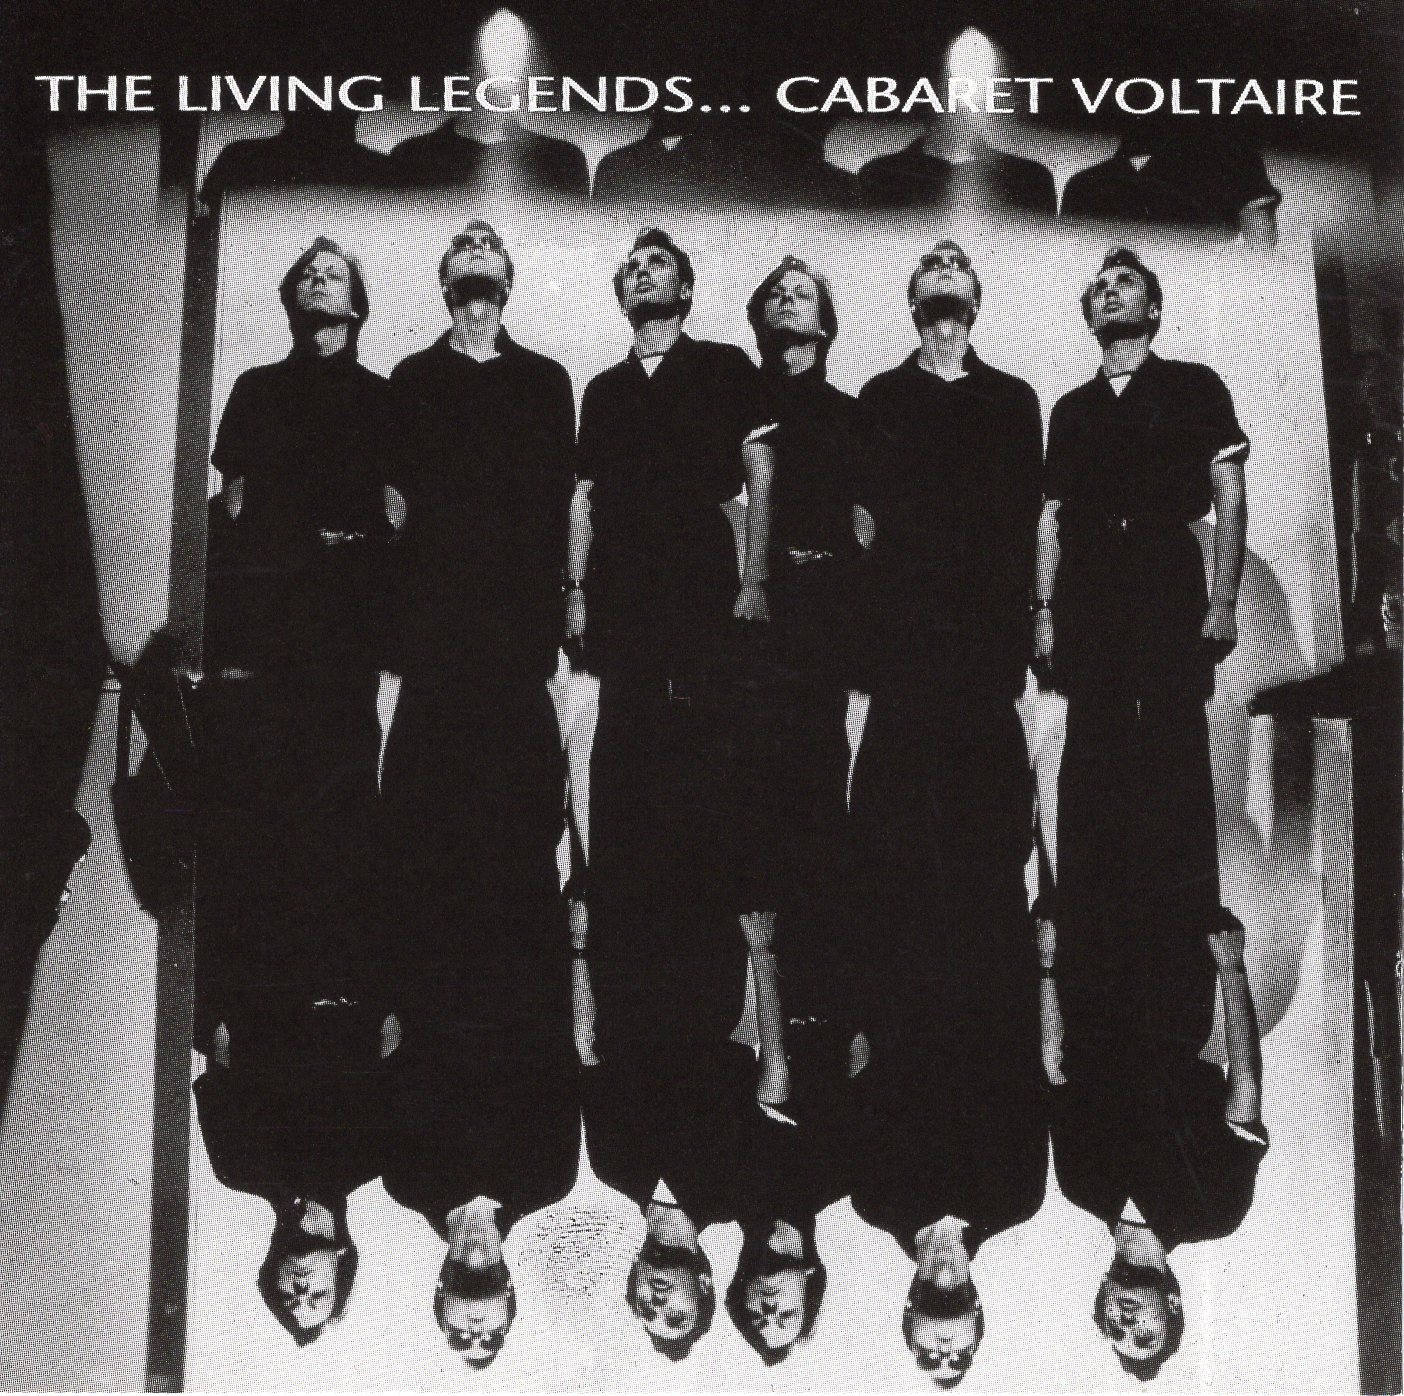 """The Living Legends...Cabaret Voltaire"" Cabaret Voltaire"